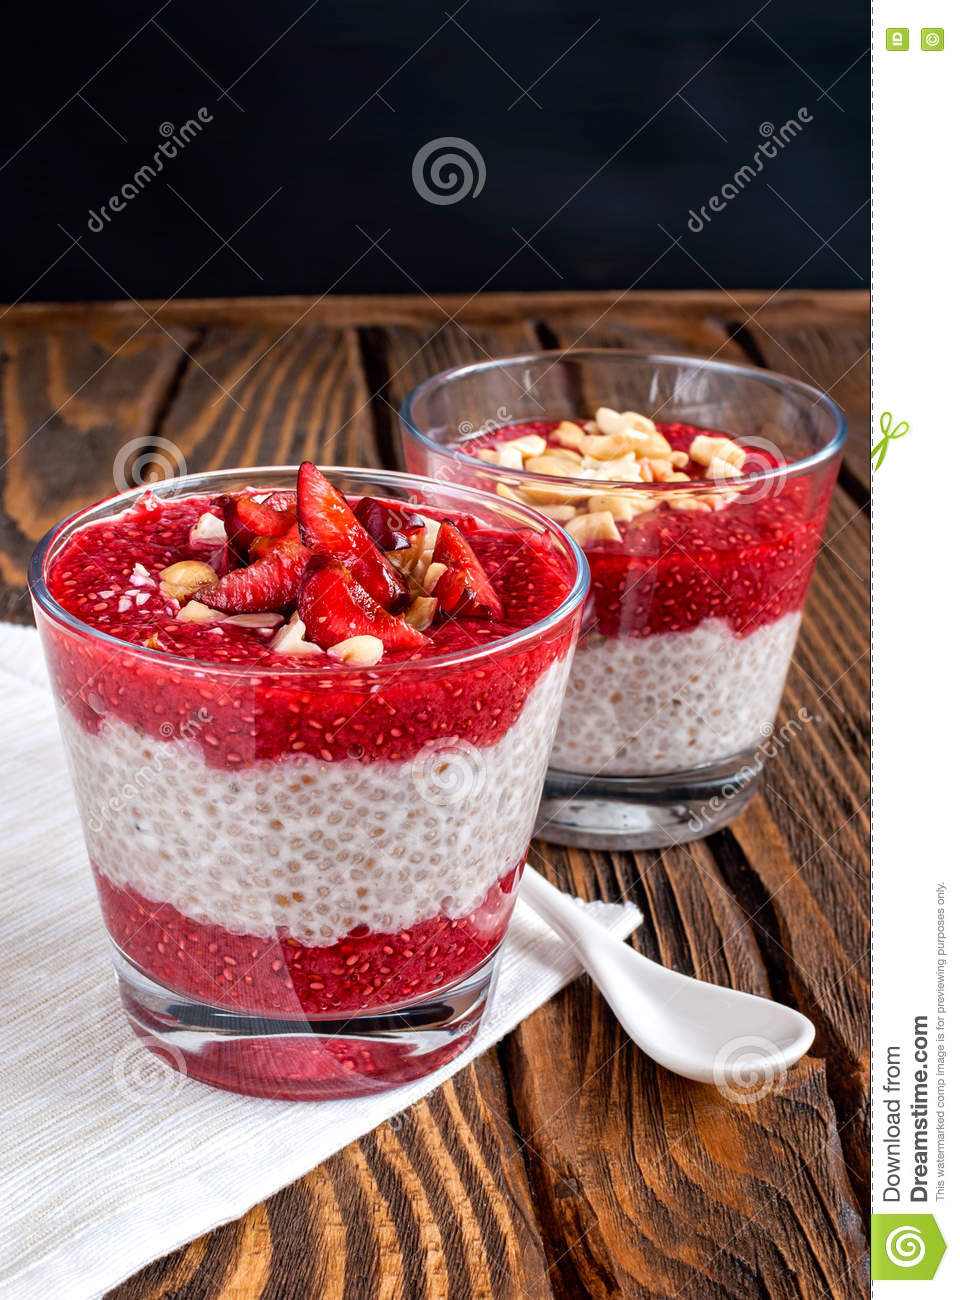 Pudding de Chia sur une table